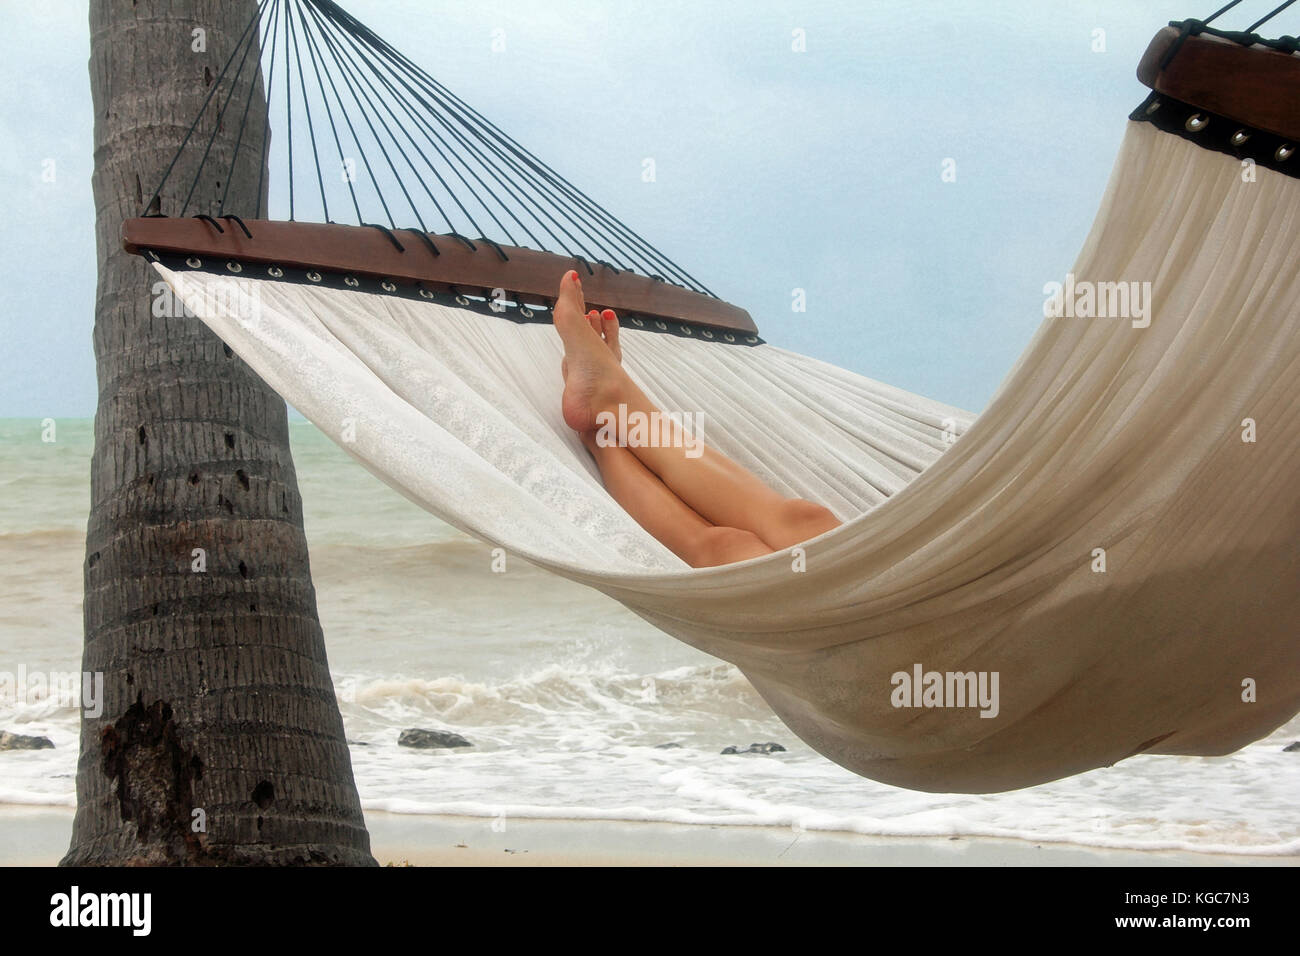 An air of mystery and relaxation is the mood of this shot of a woman relaxing in a hammock on a tropical beach underneath - Stock Image